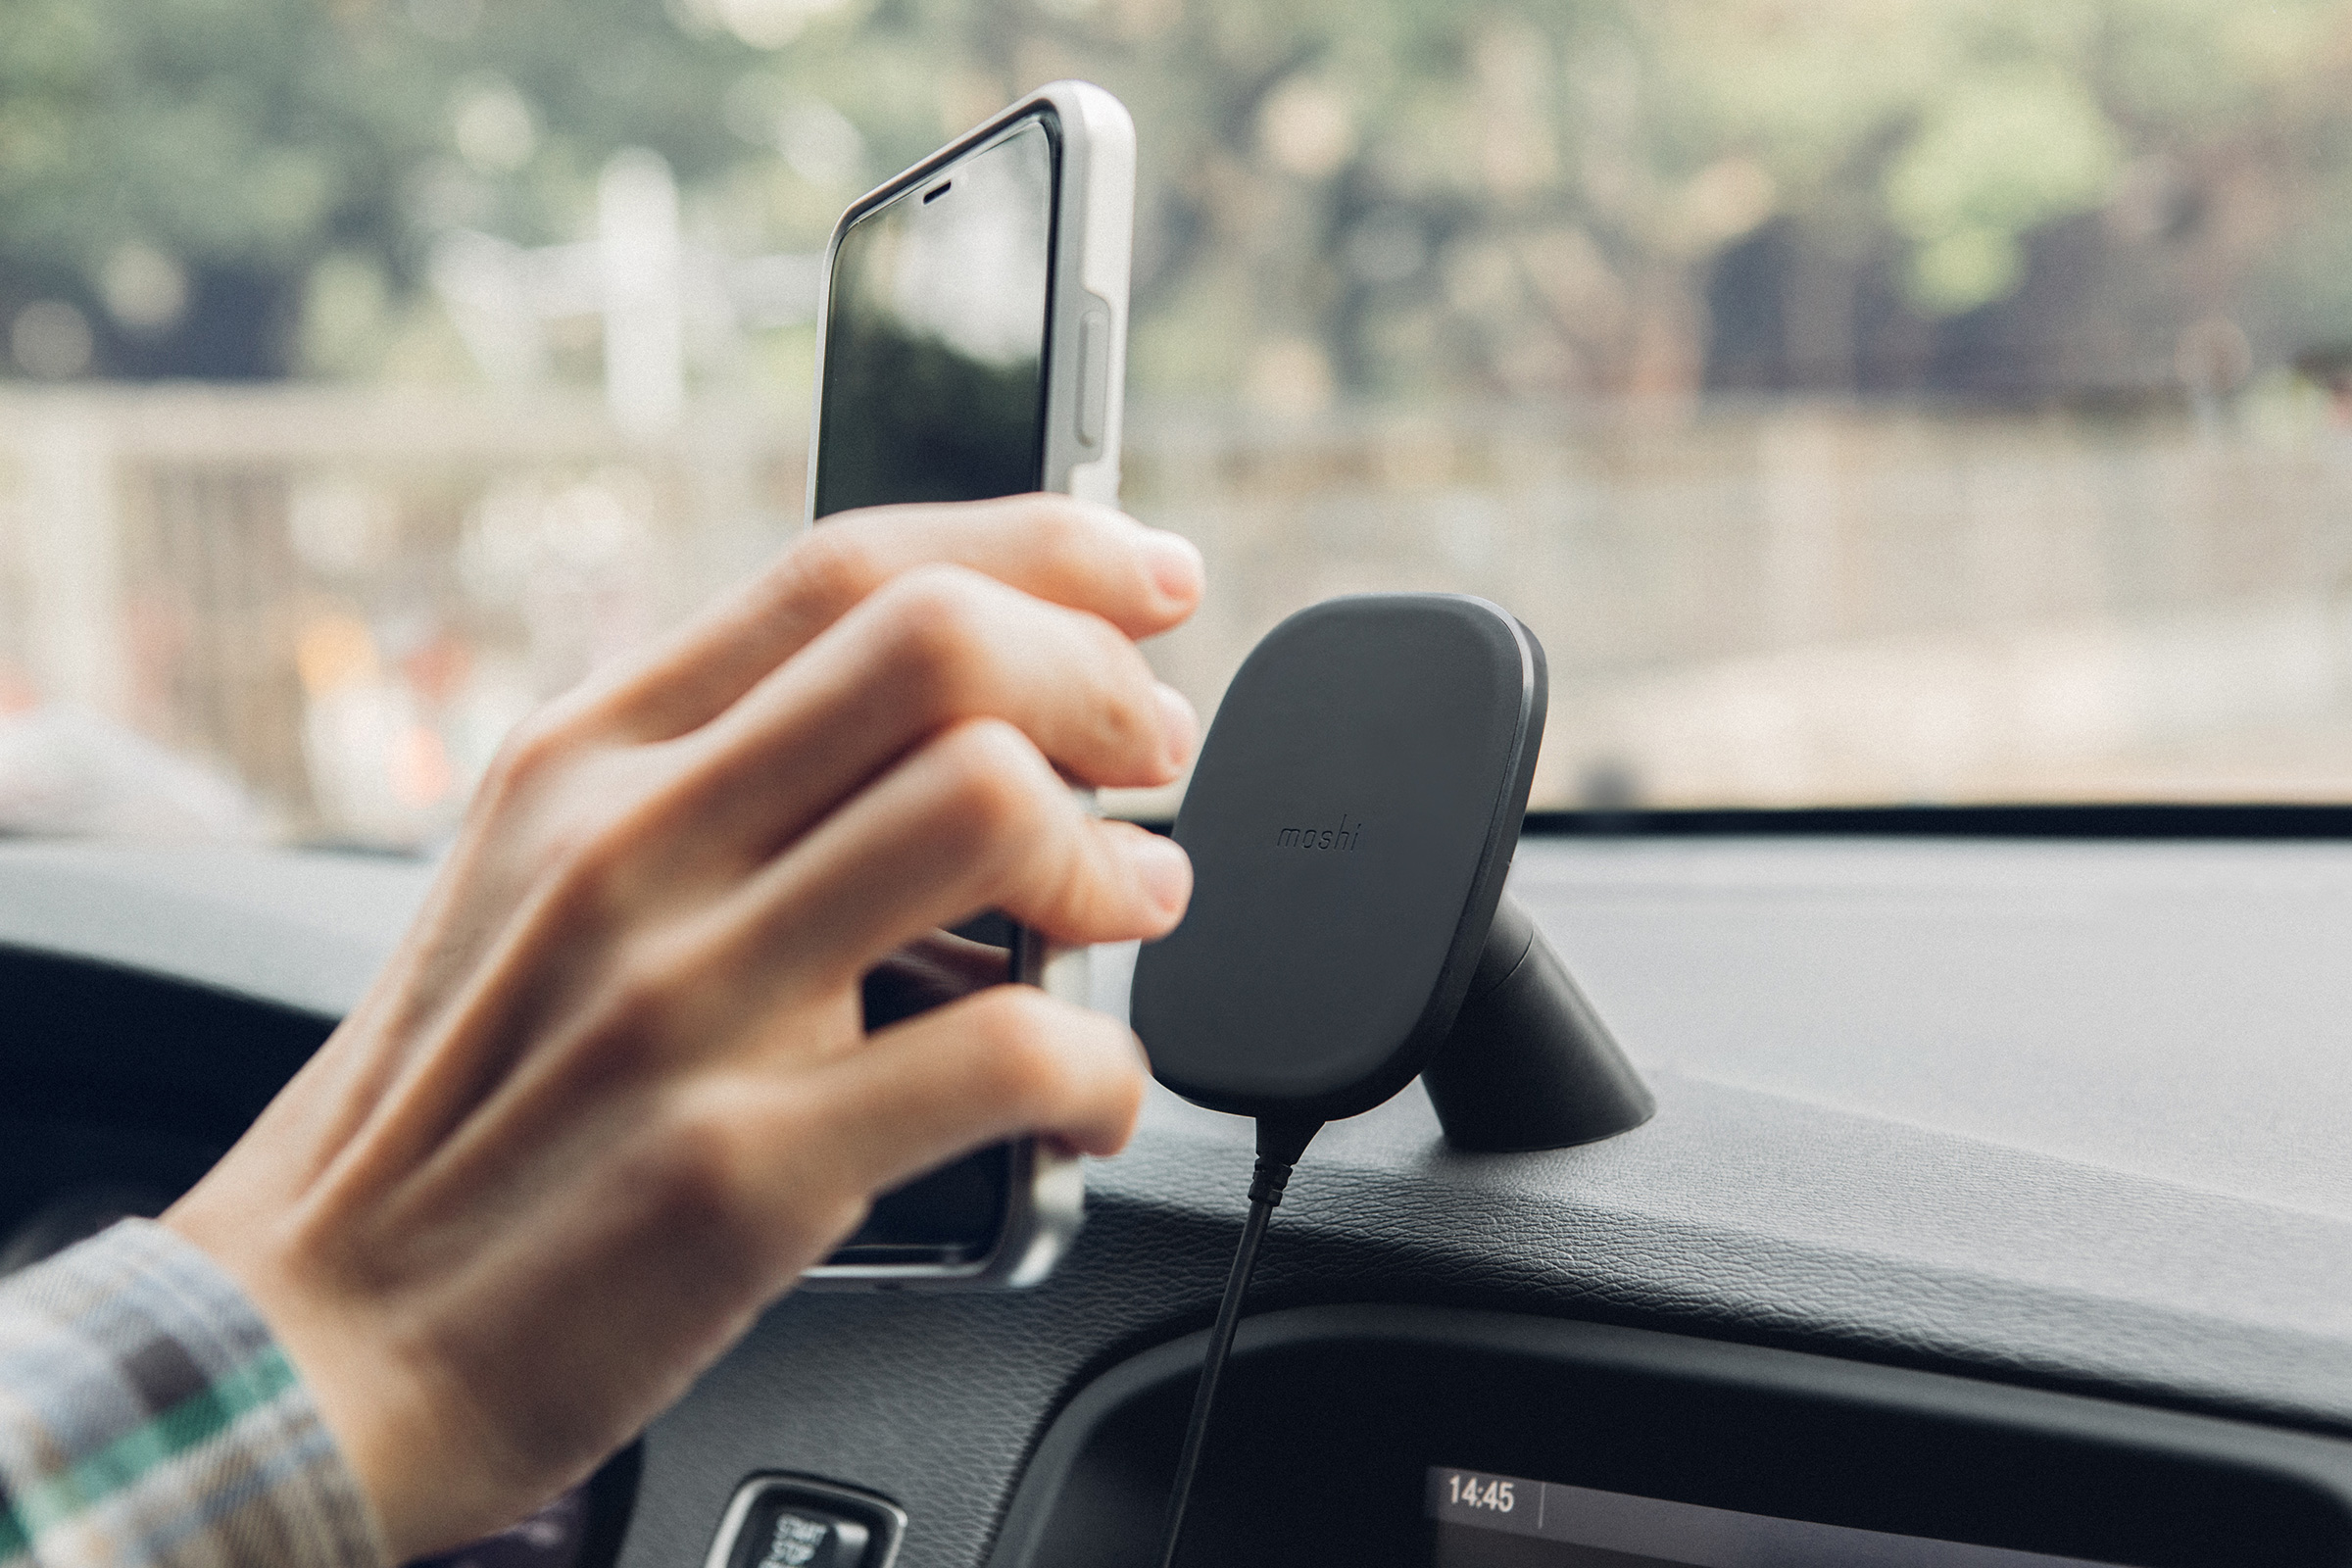 Save $10 when you buy a new SnapTo Car Mount together with a case. Discount applied at checkout. (Offer only available in the US/CA and EU.) Visit this page to learn more about the SnapTo mounting system.